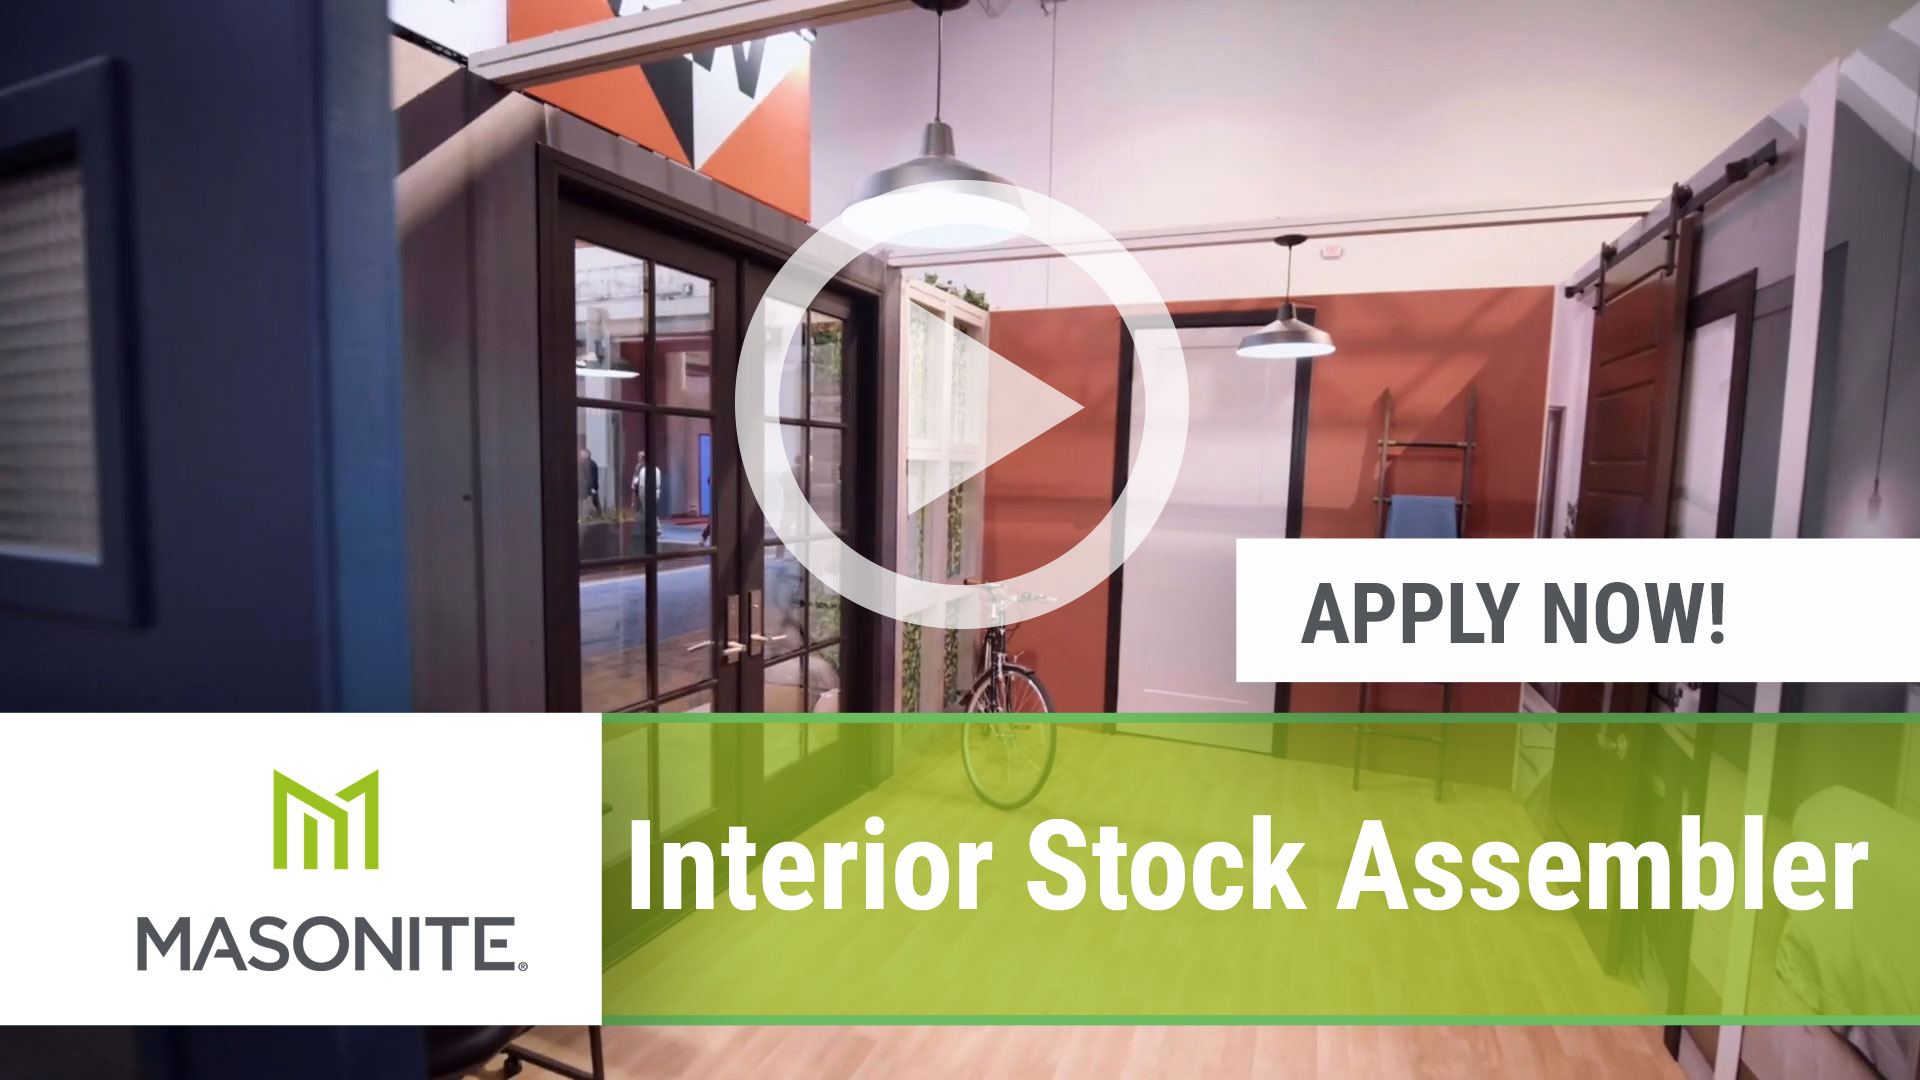 Watch our careers video for available job opening Interior Stock Assembler in Lawrenceville, GA, USA